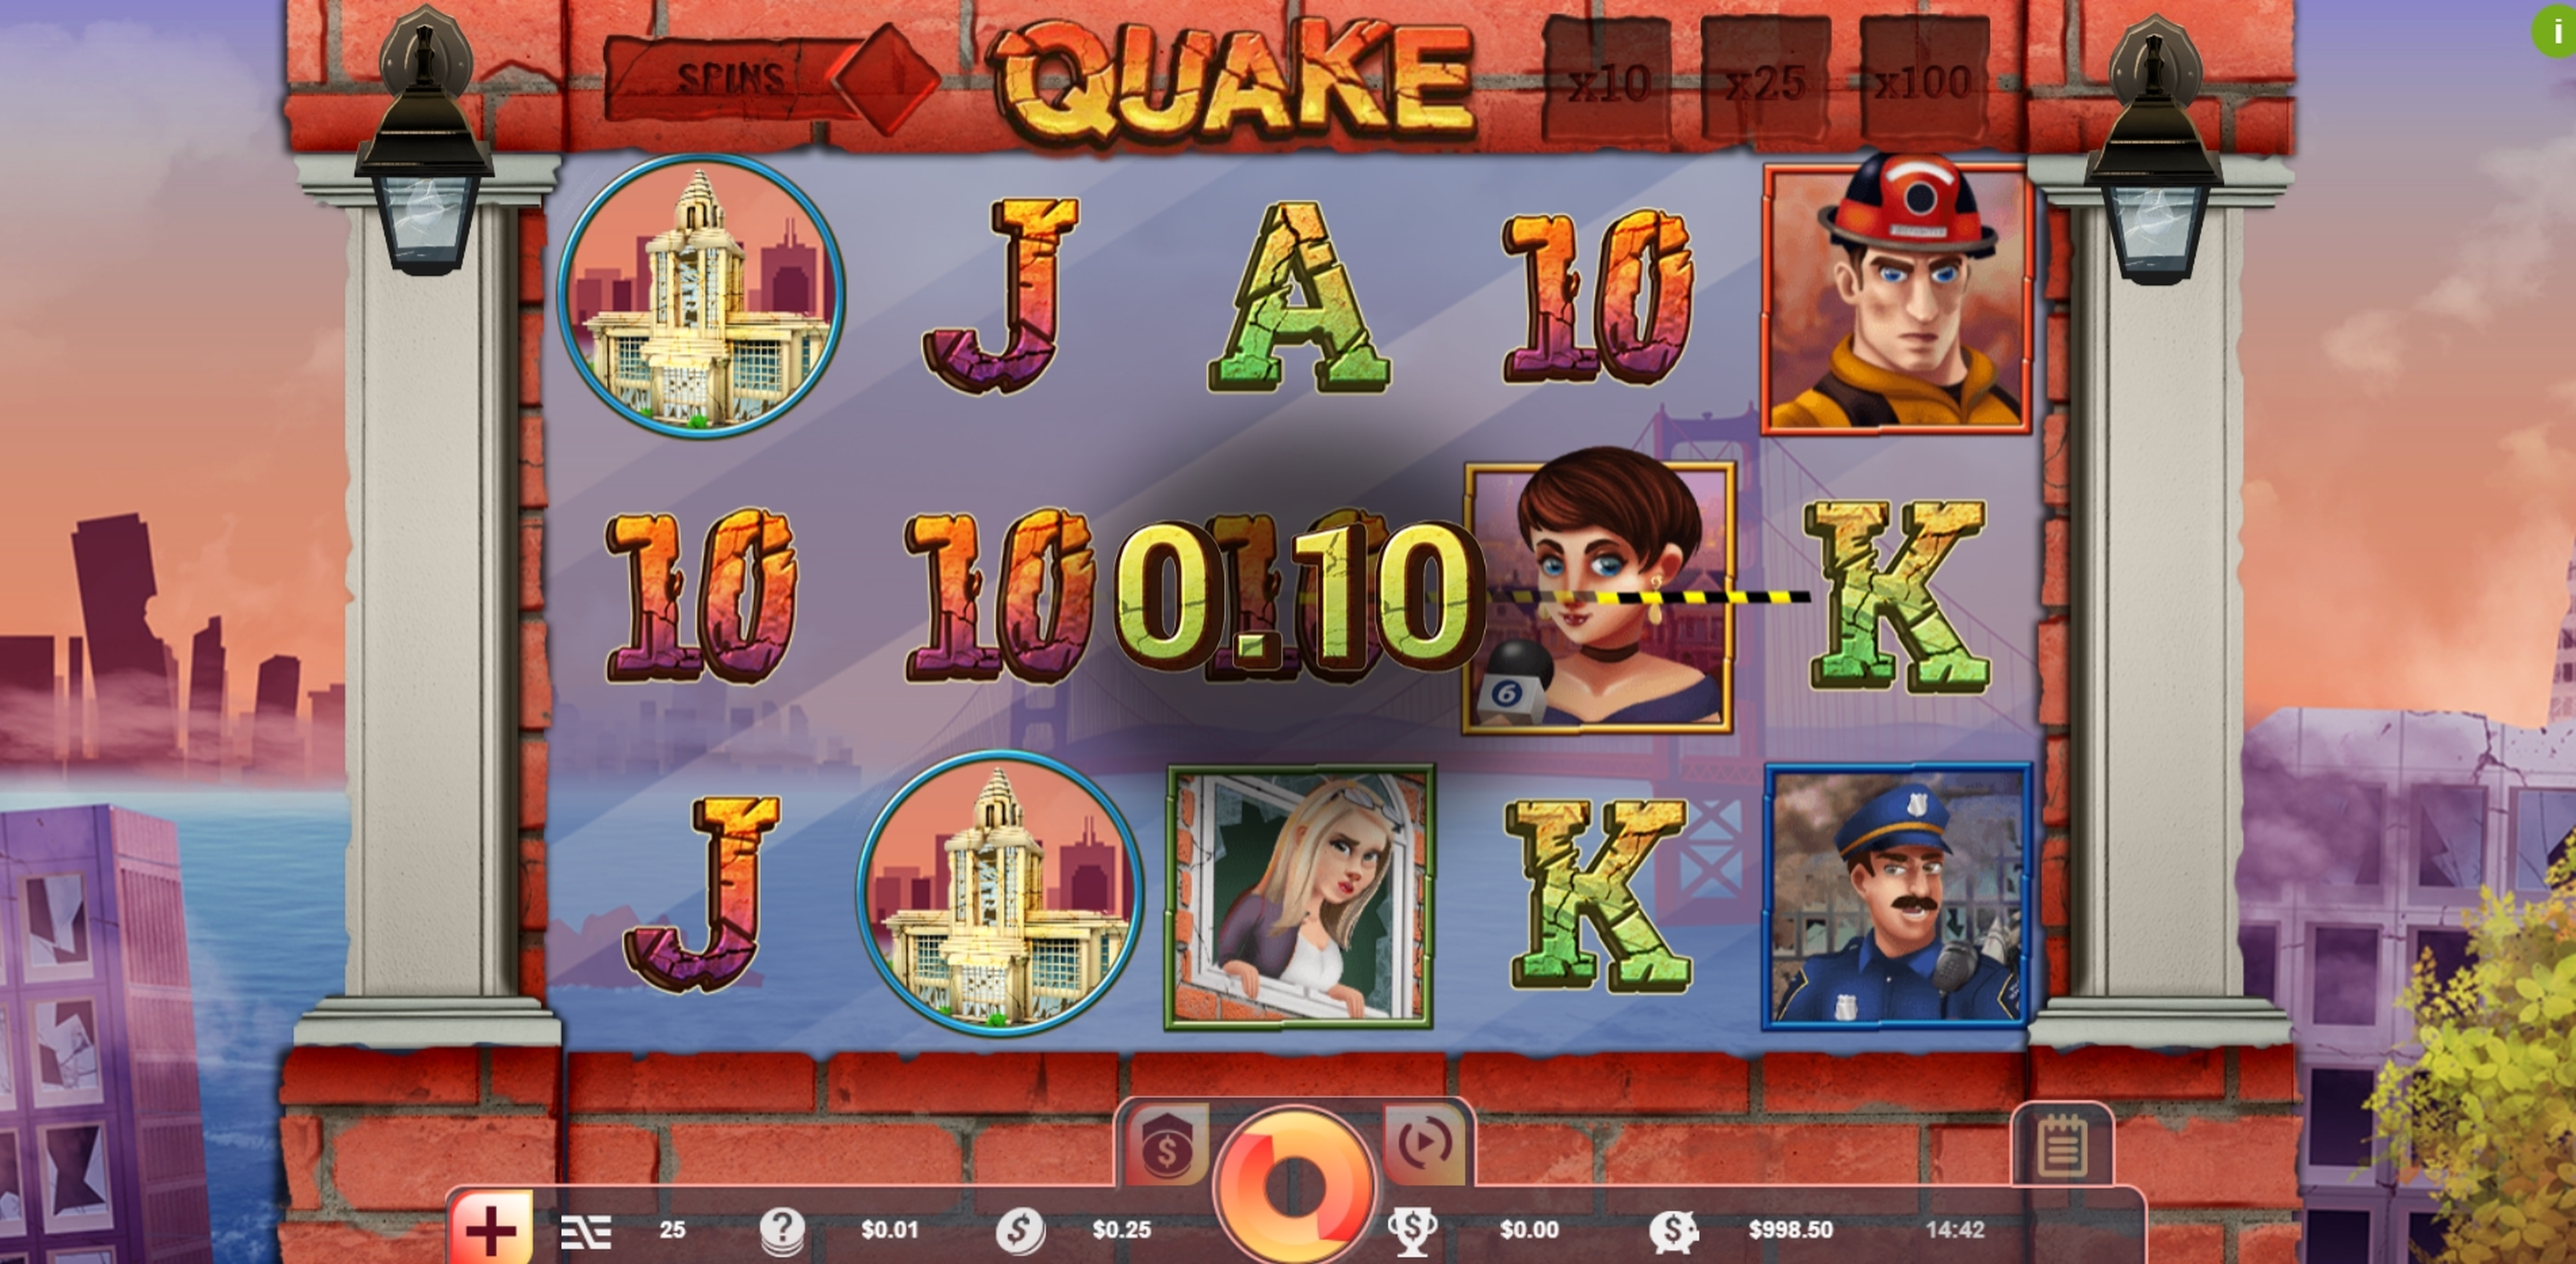 Win Money in Quake Free Slot Game by Vibra Gaming